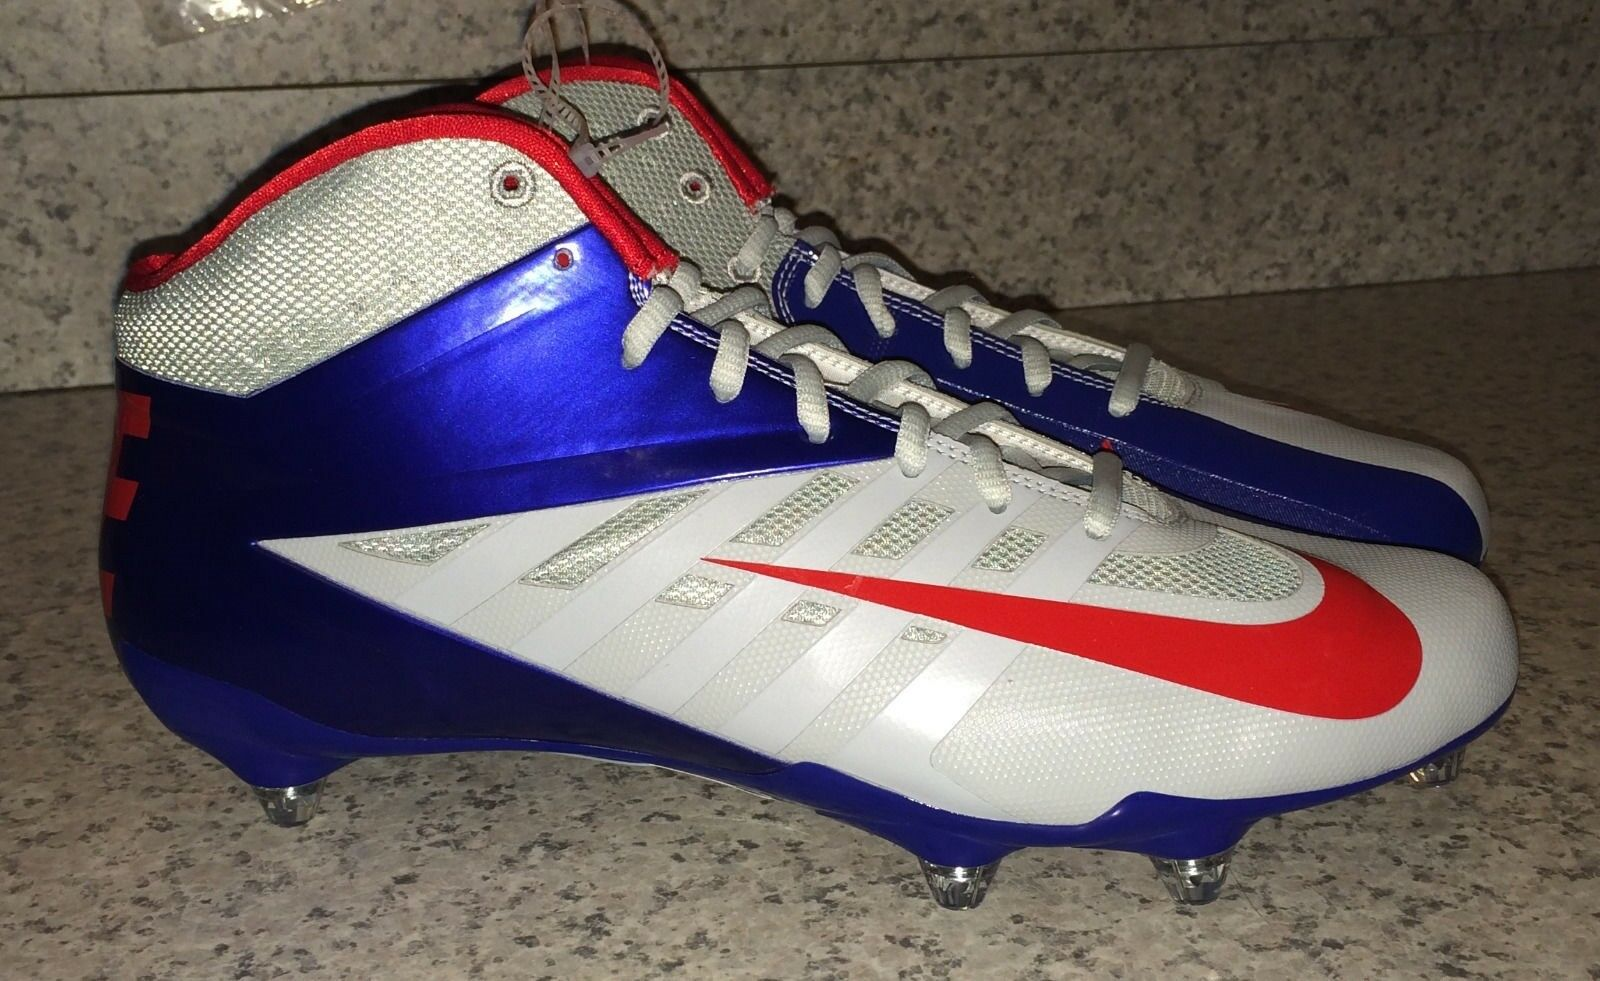 NIKE Vapor Pro Mid D Detachable Football Cleats Grey bluee Red NEW Mens 12 13.5